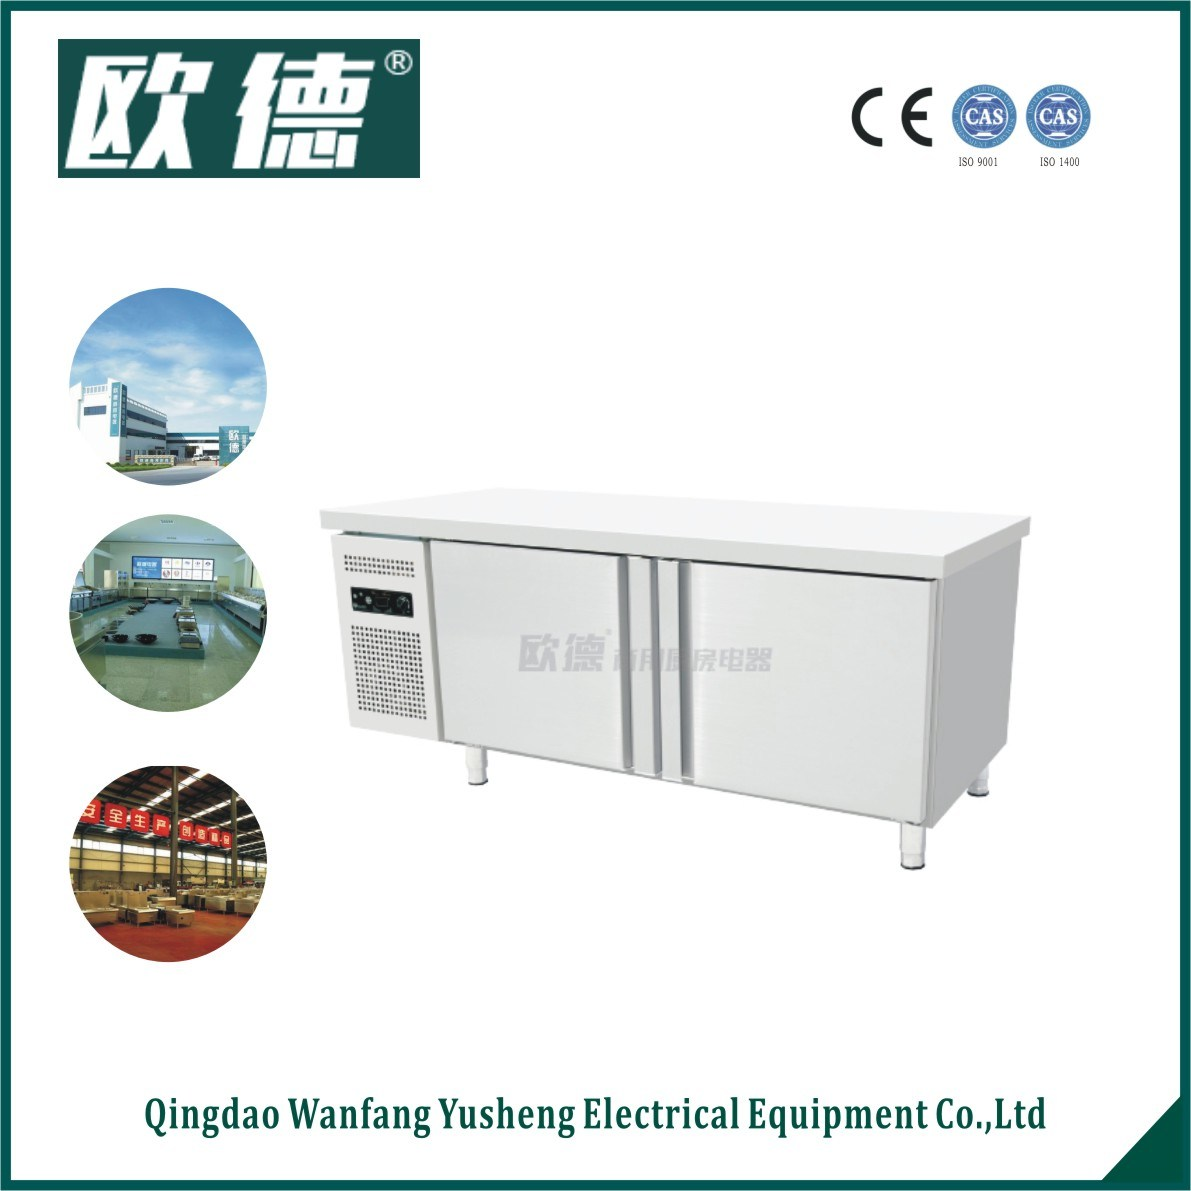 China Commercial Kitchen Double Door Undercounter Refrigerator With  Workbench   China Undercounter Refrigerator, Refrigerator With Workbench